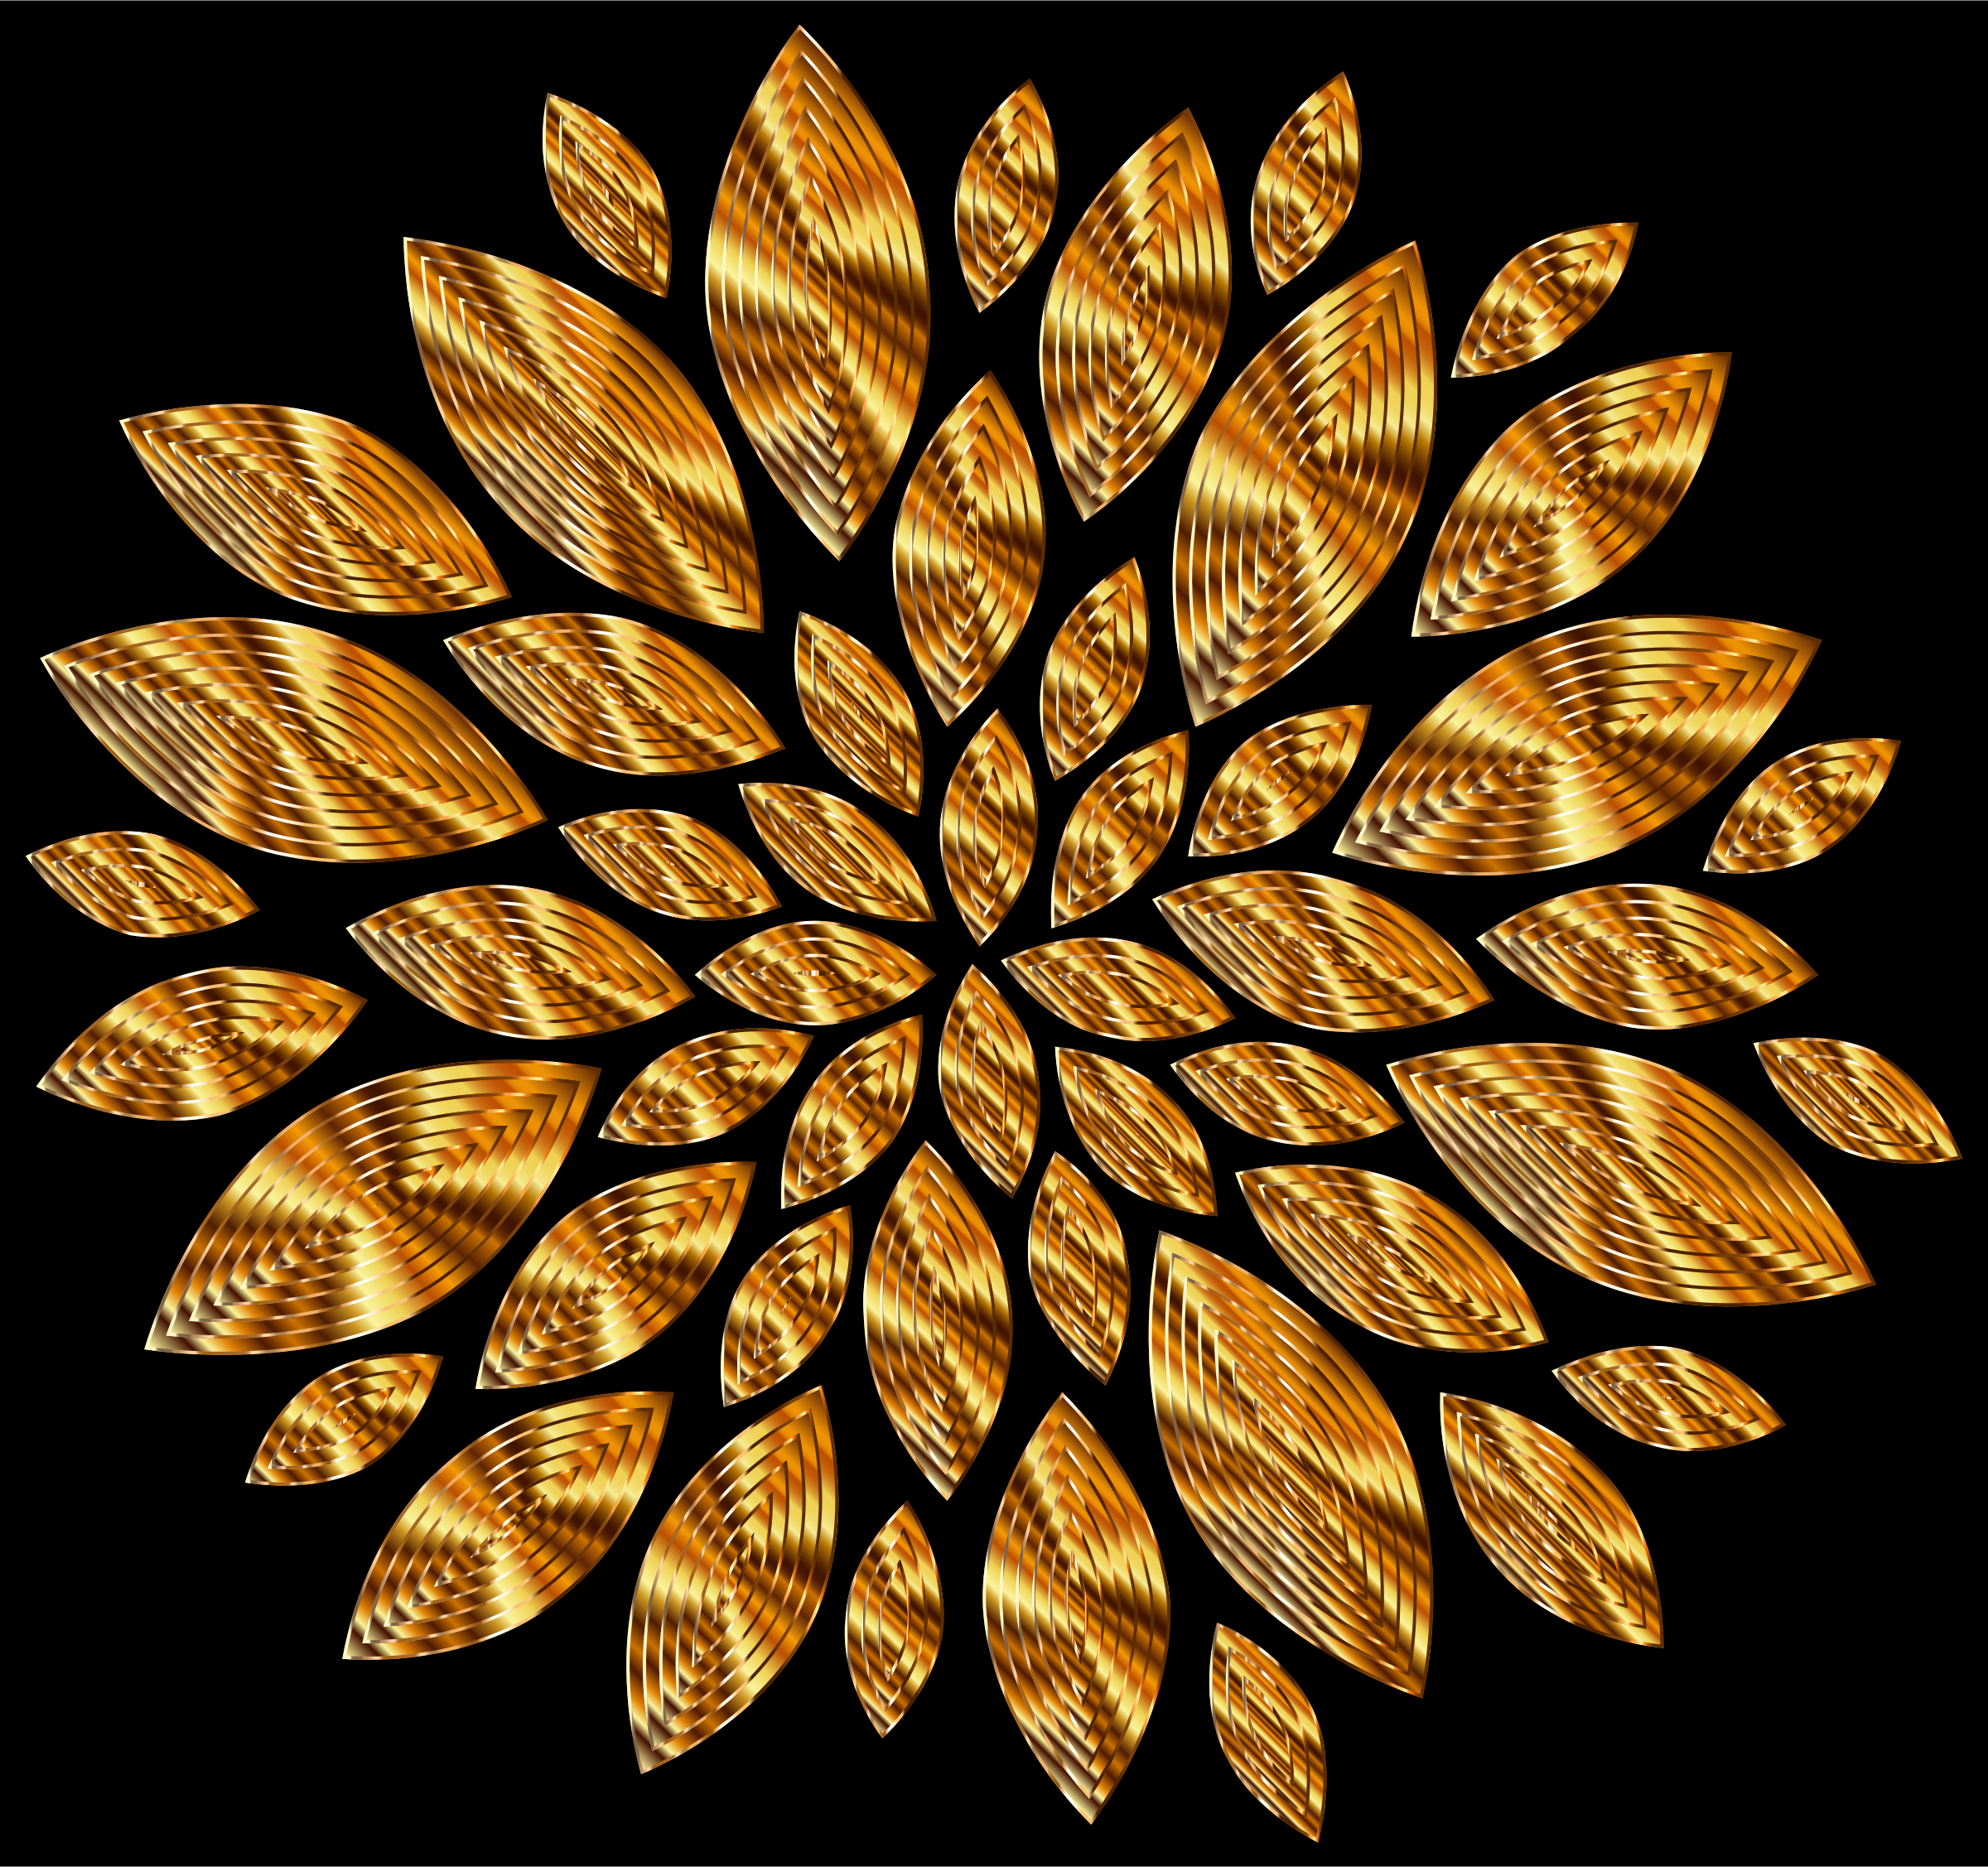 Gold Flower Petals Variation 5 With Background by GDJ